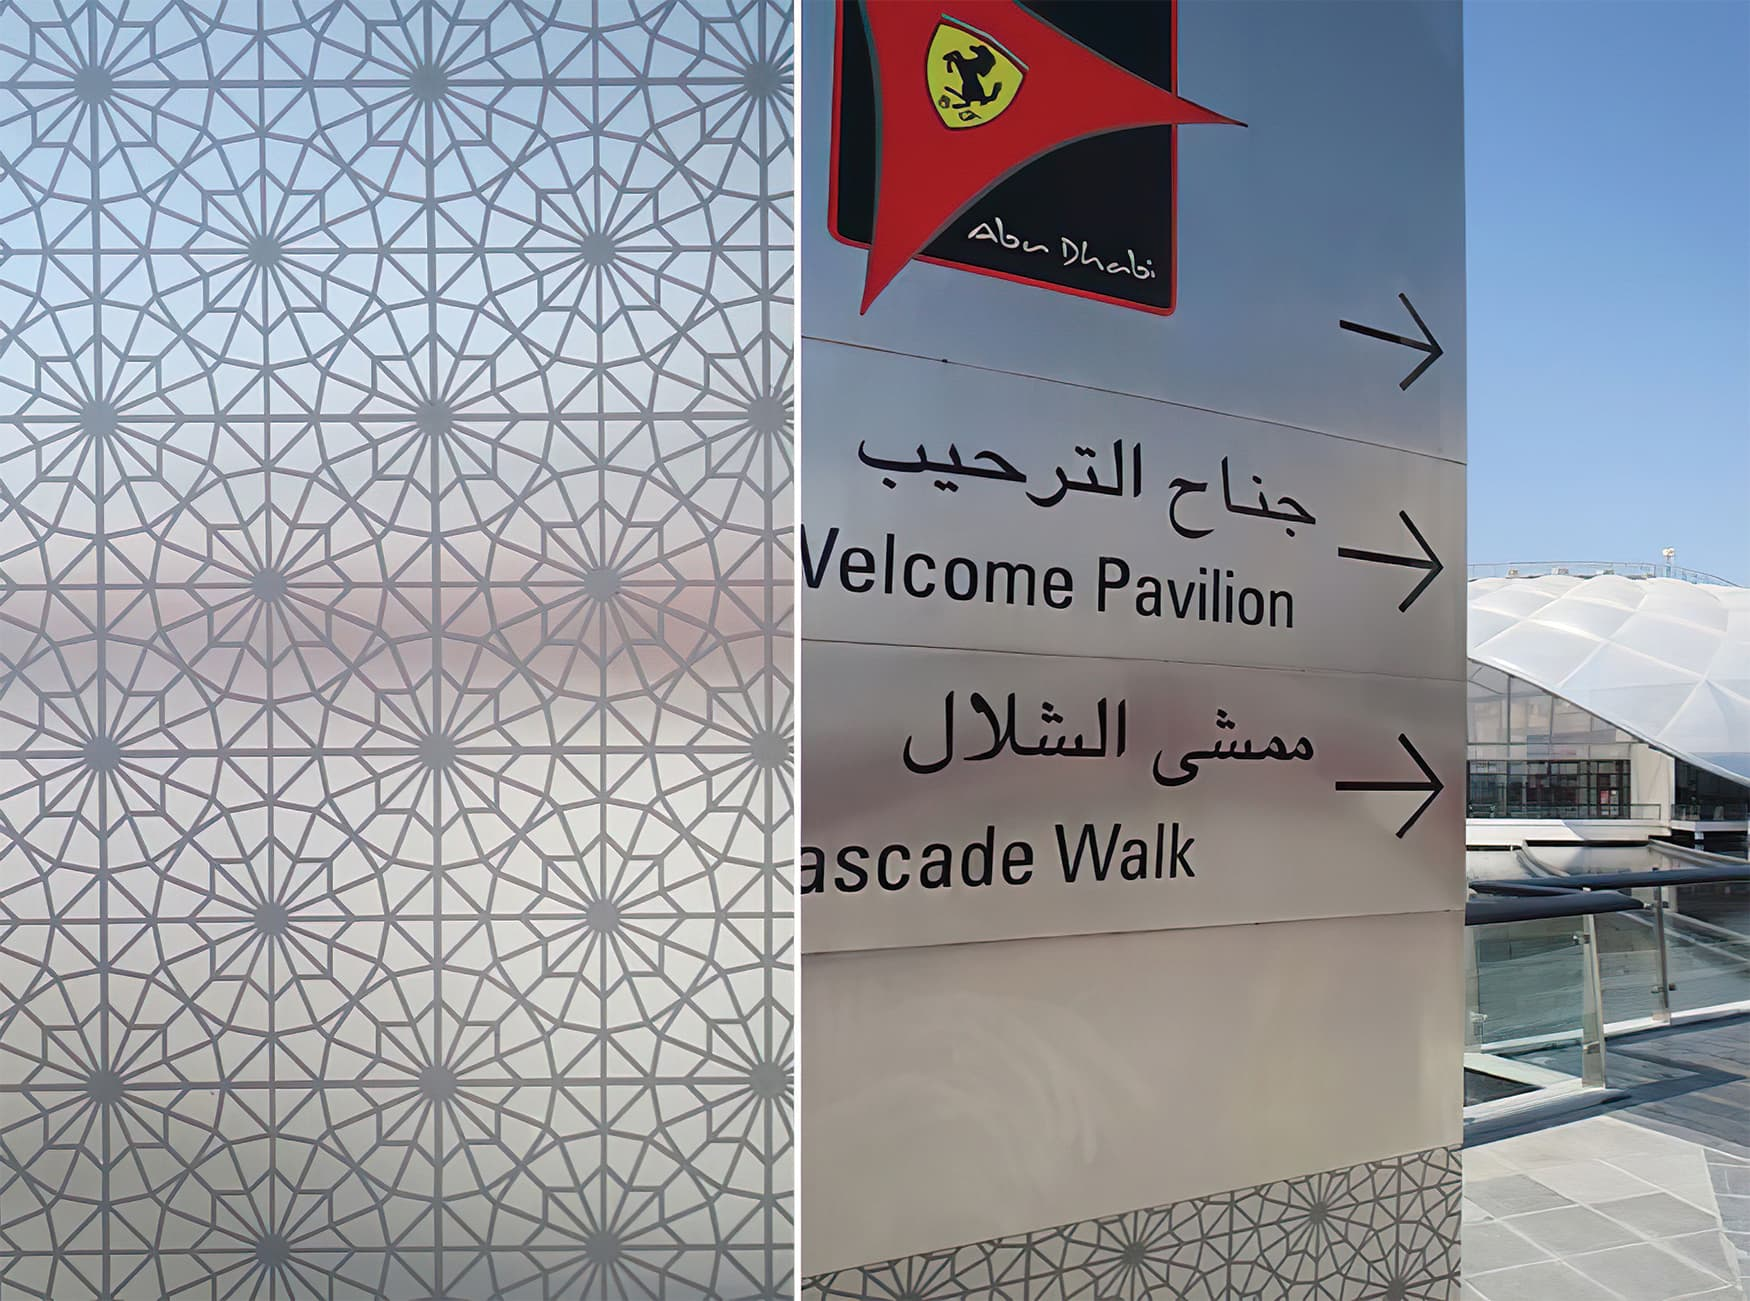 Ferrari World in Abu Dhabi in the United Arab Emirates. Project Wayfinding Design Directional Signage.